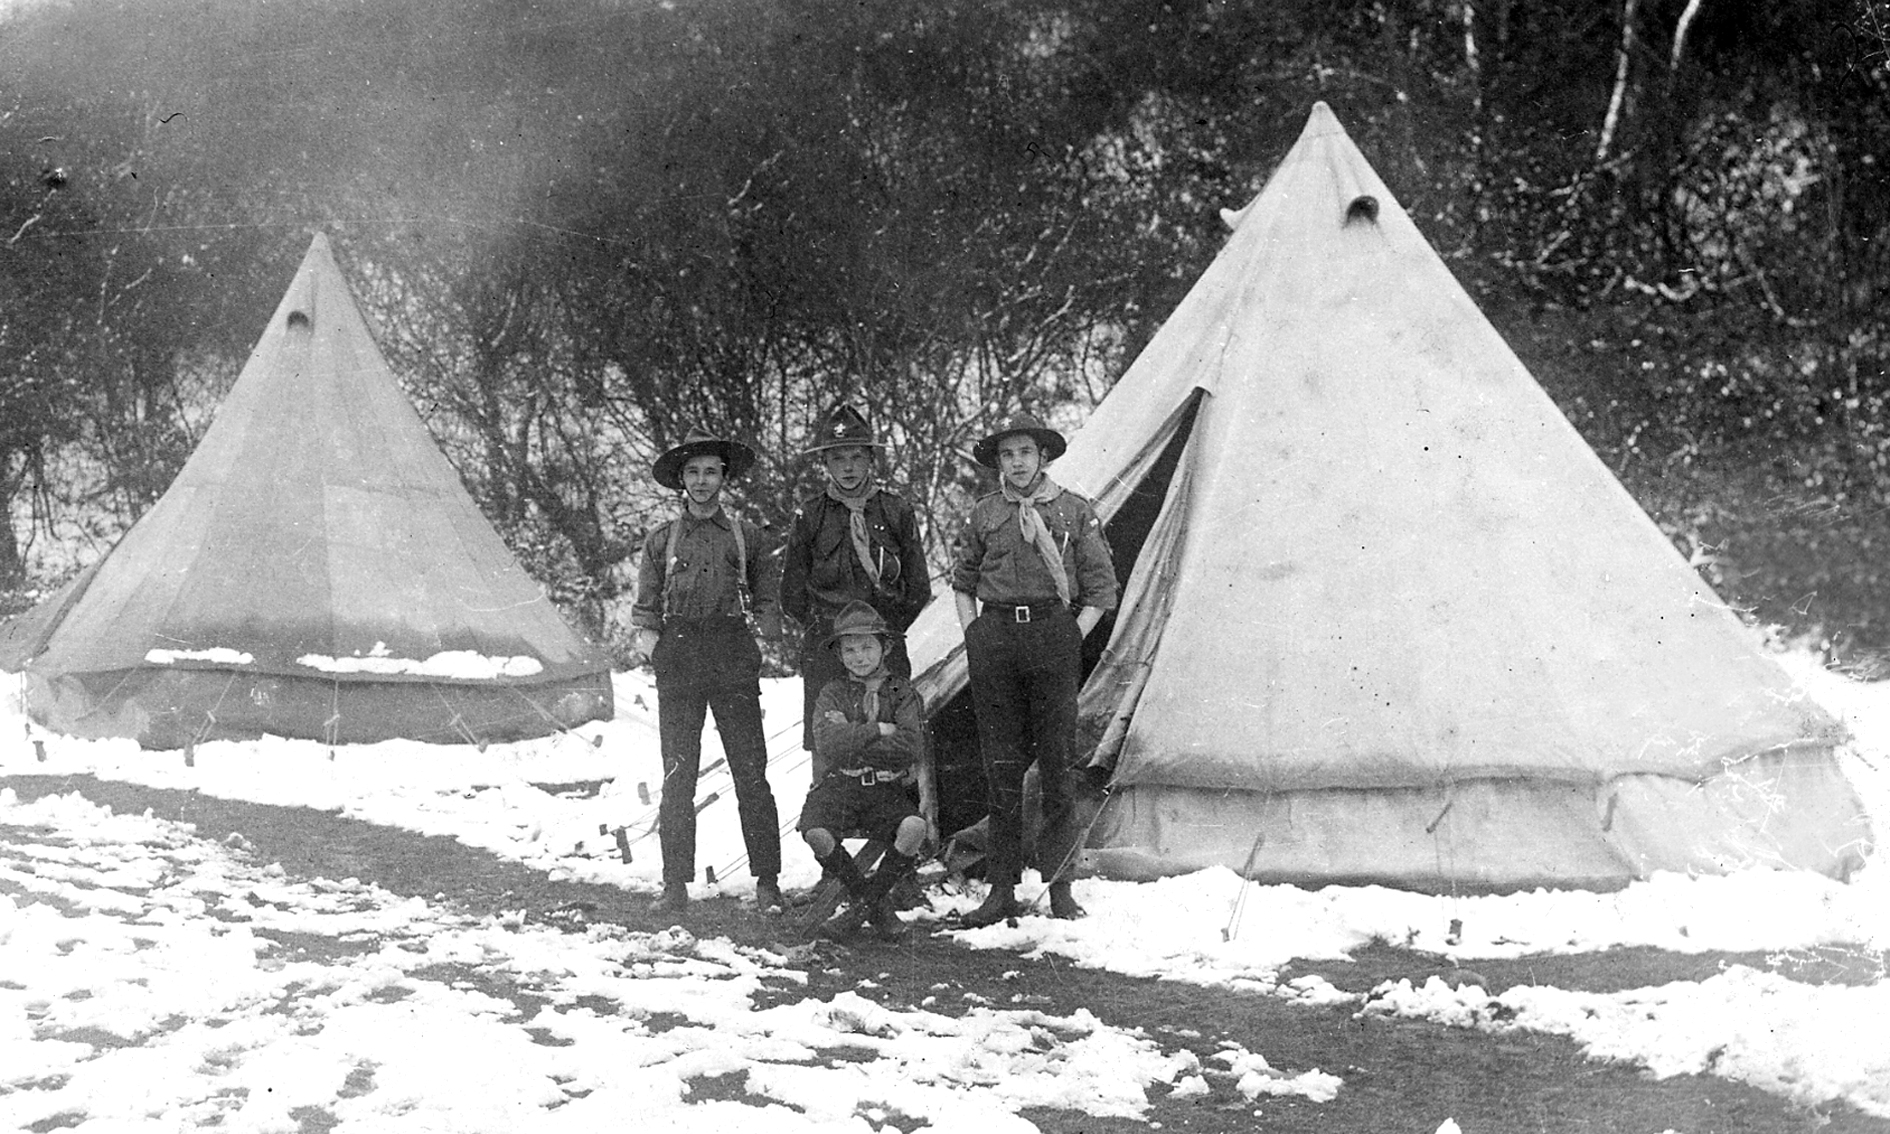 Bell Tent during 1st World War